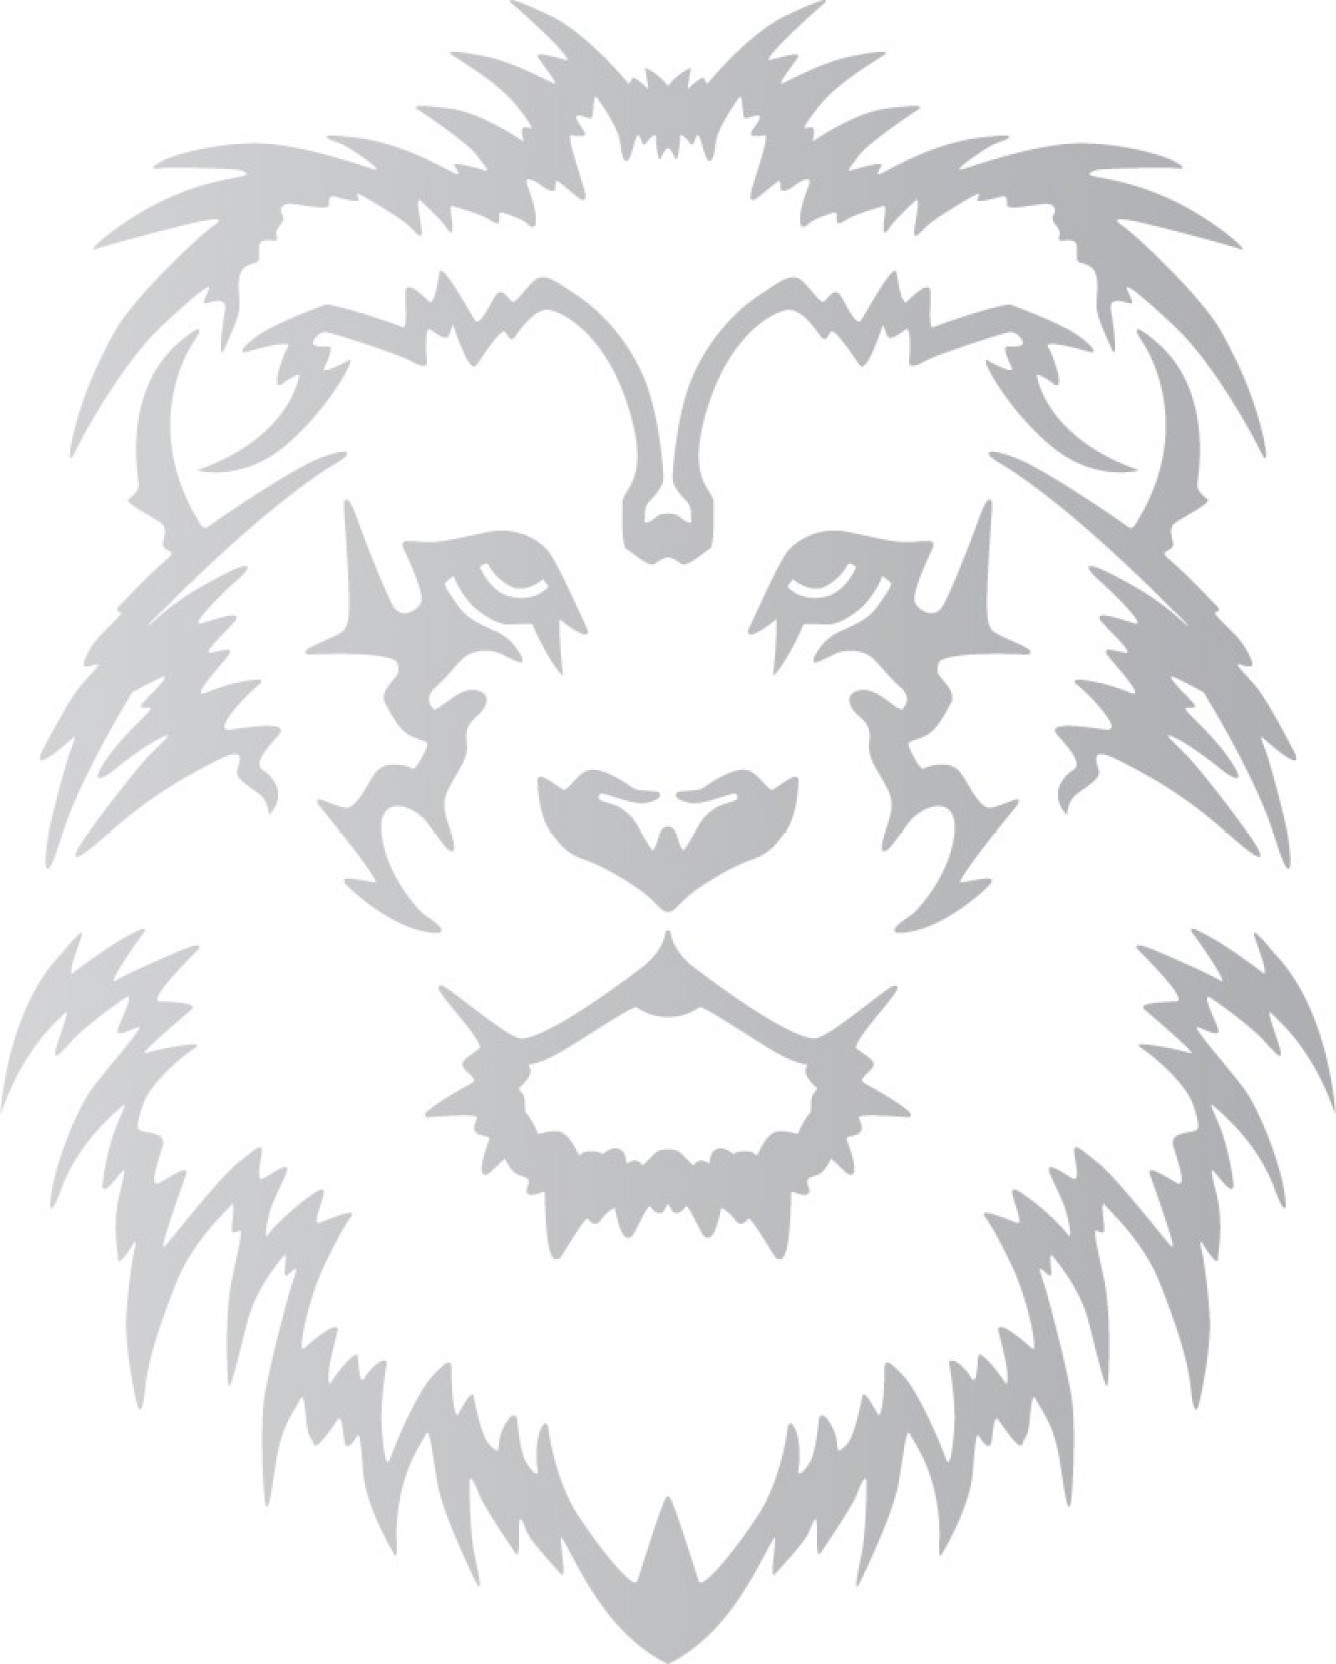 Wall design stickers for bikes online lion king silver colour reflective vinyl motorcycle design sticker pack of 1